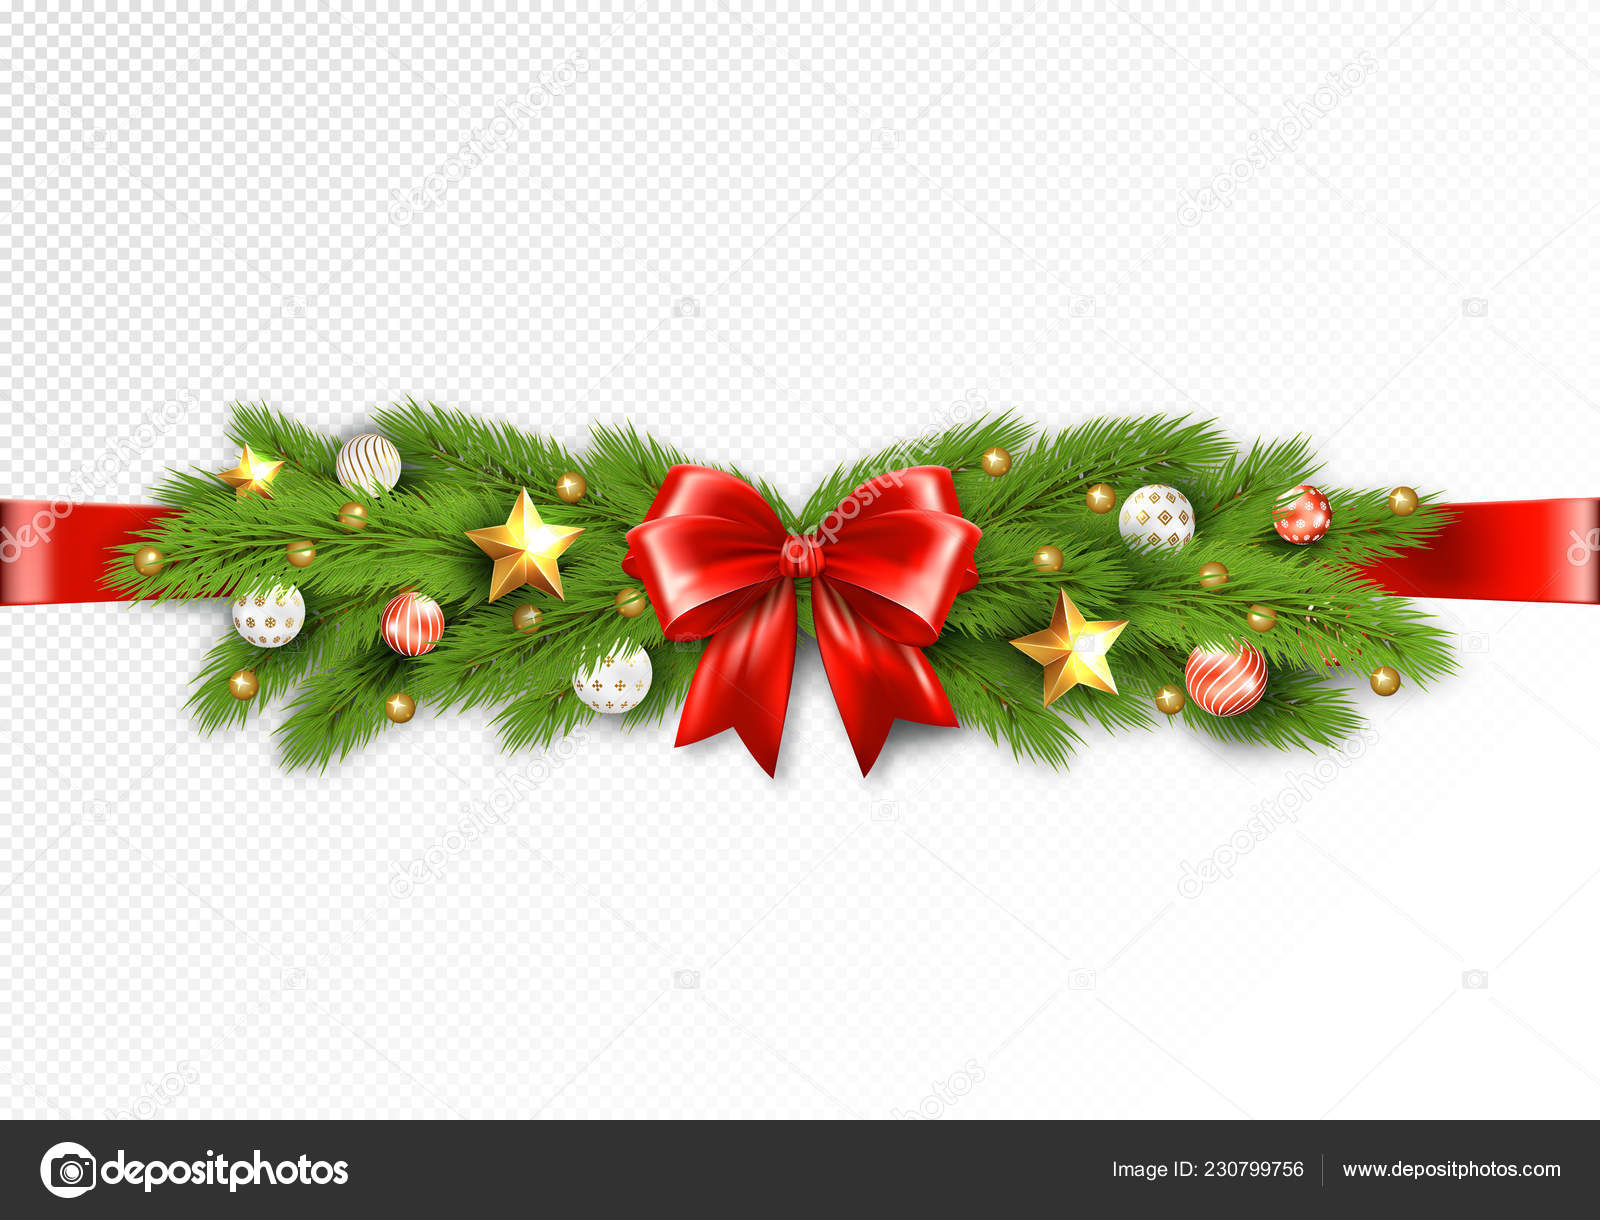 Detailed Christmas Garland Transparent Background Stock Vector